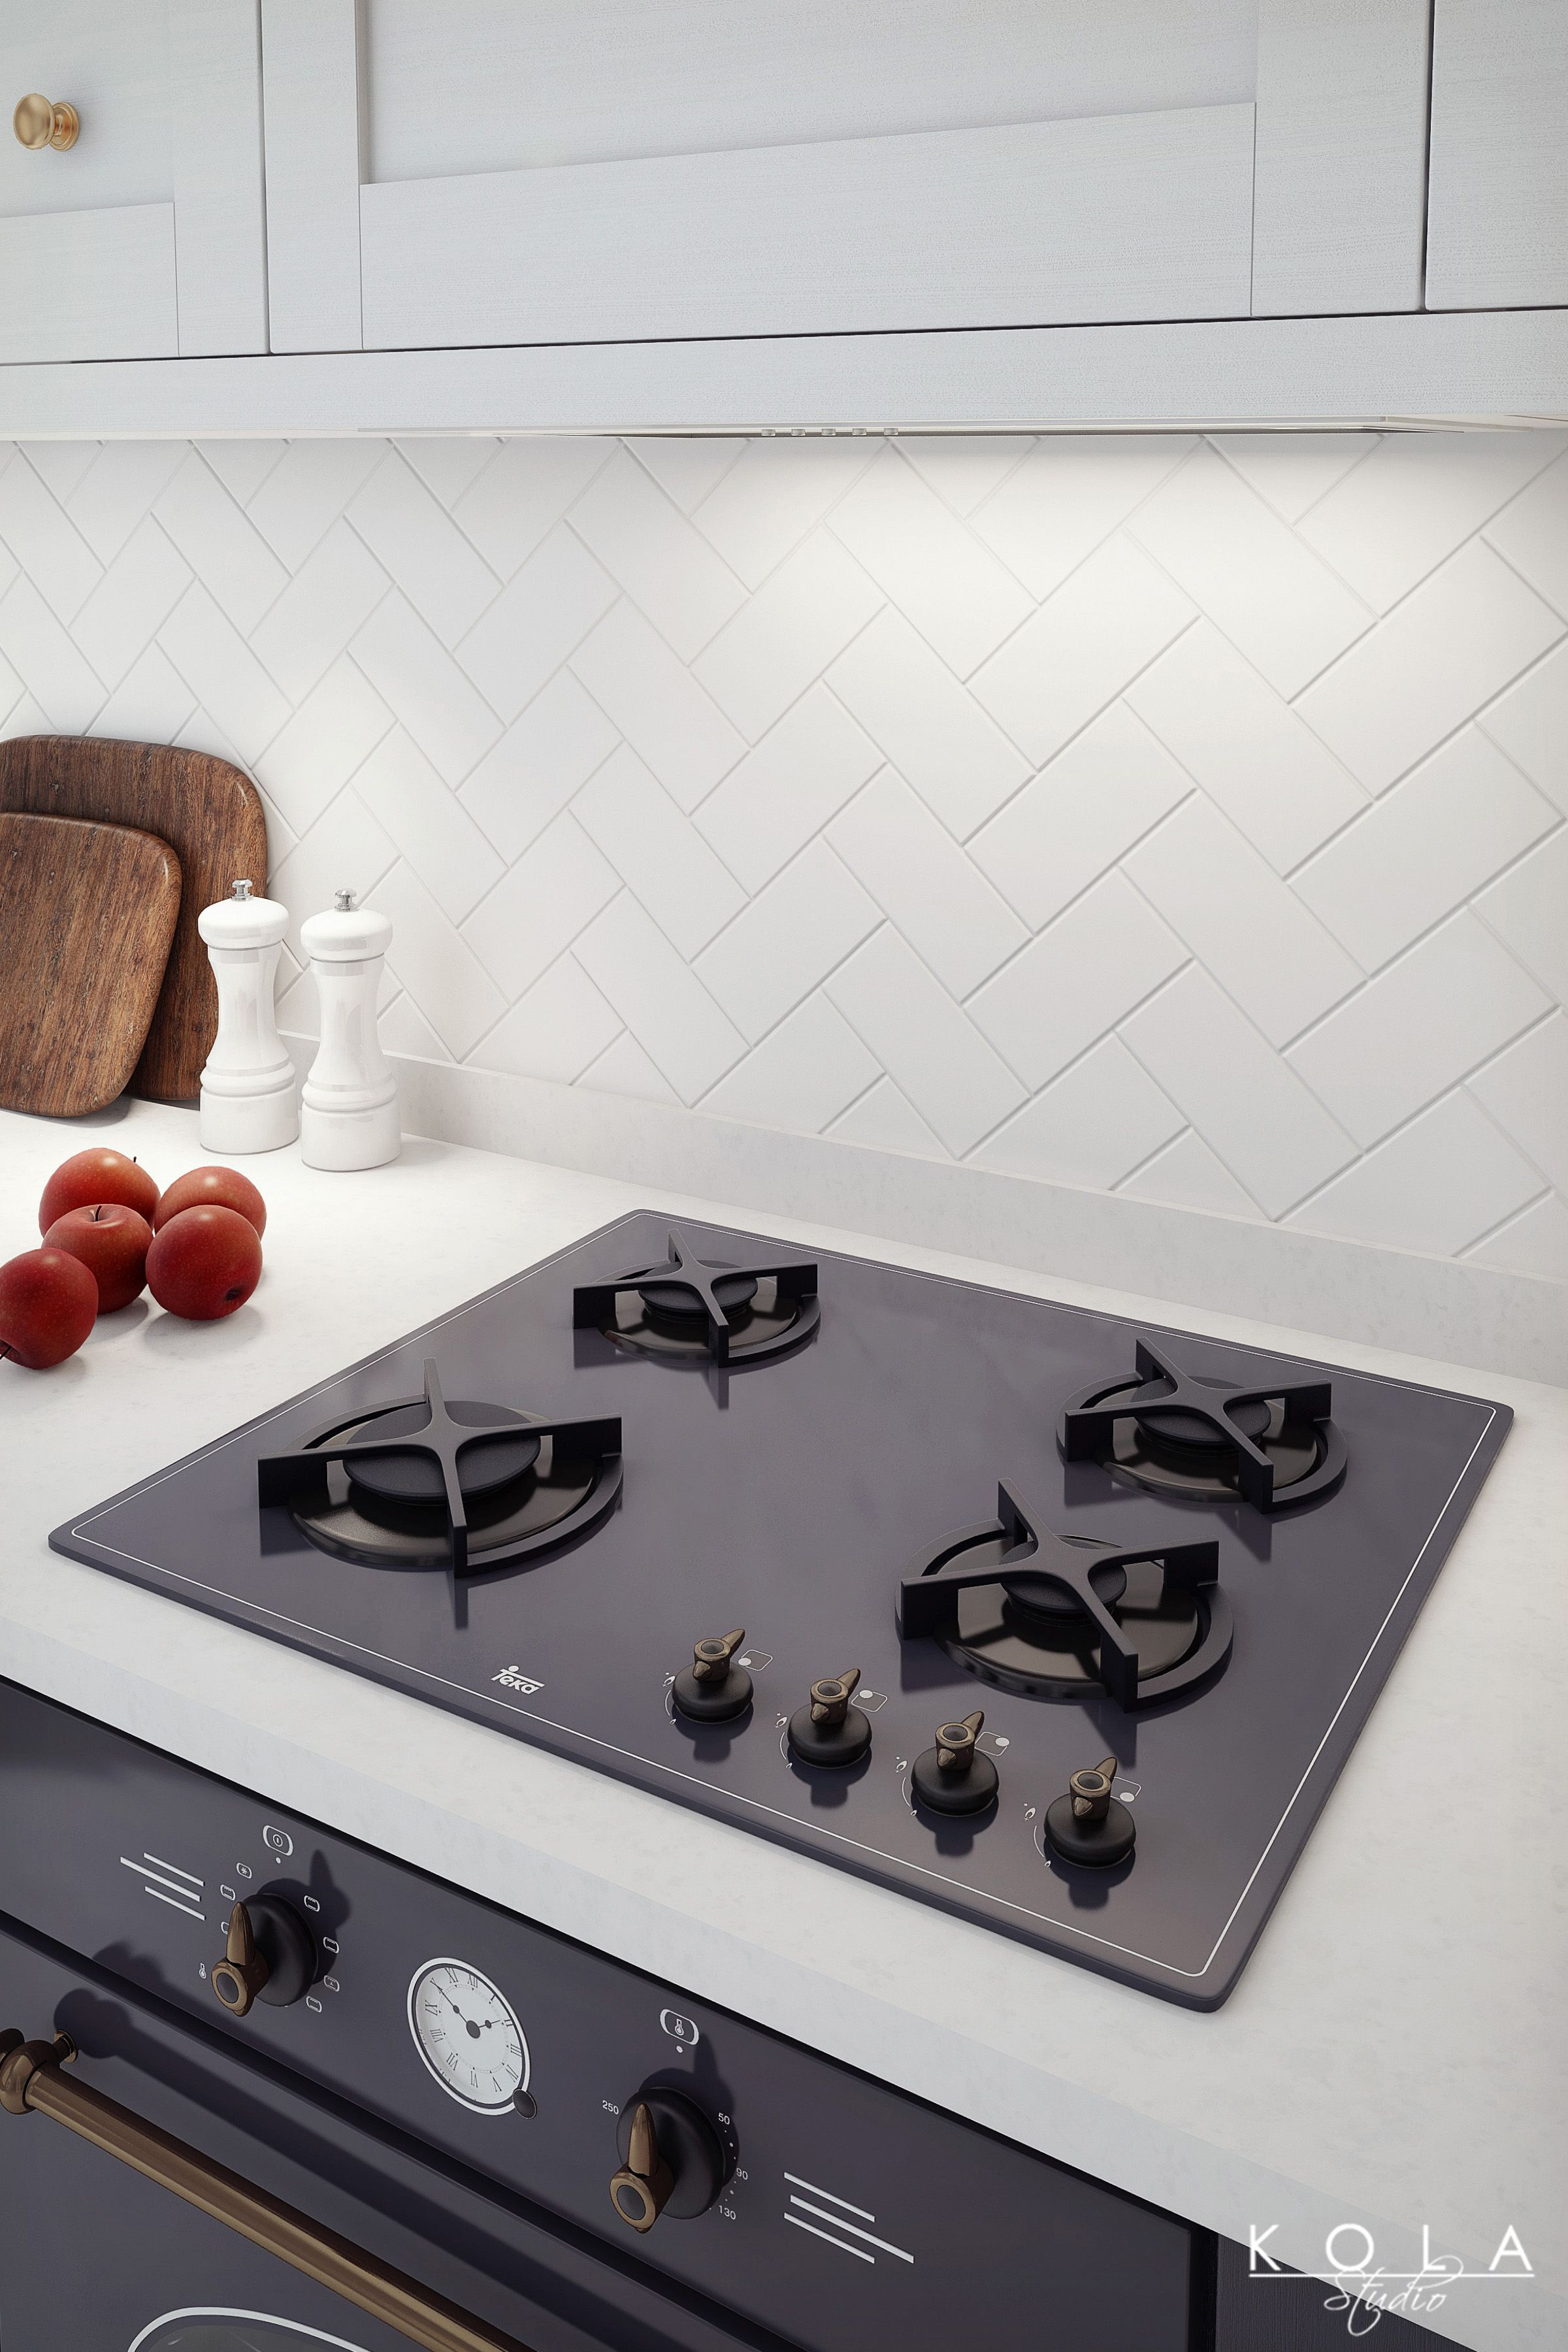 Contemporary retro / transitional kitchen ideas. Visualizations of ...